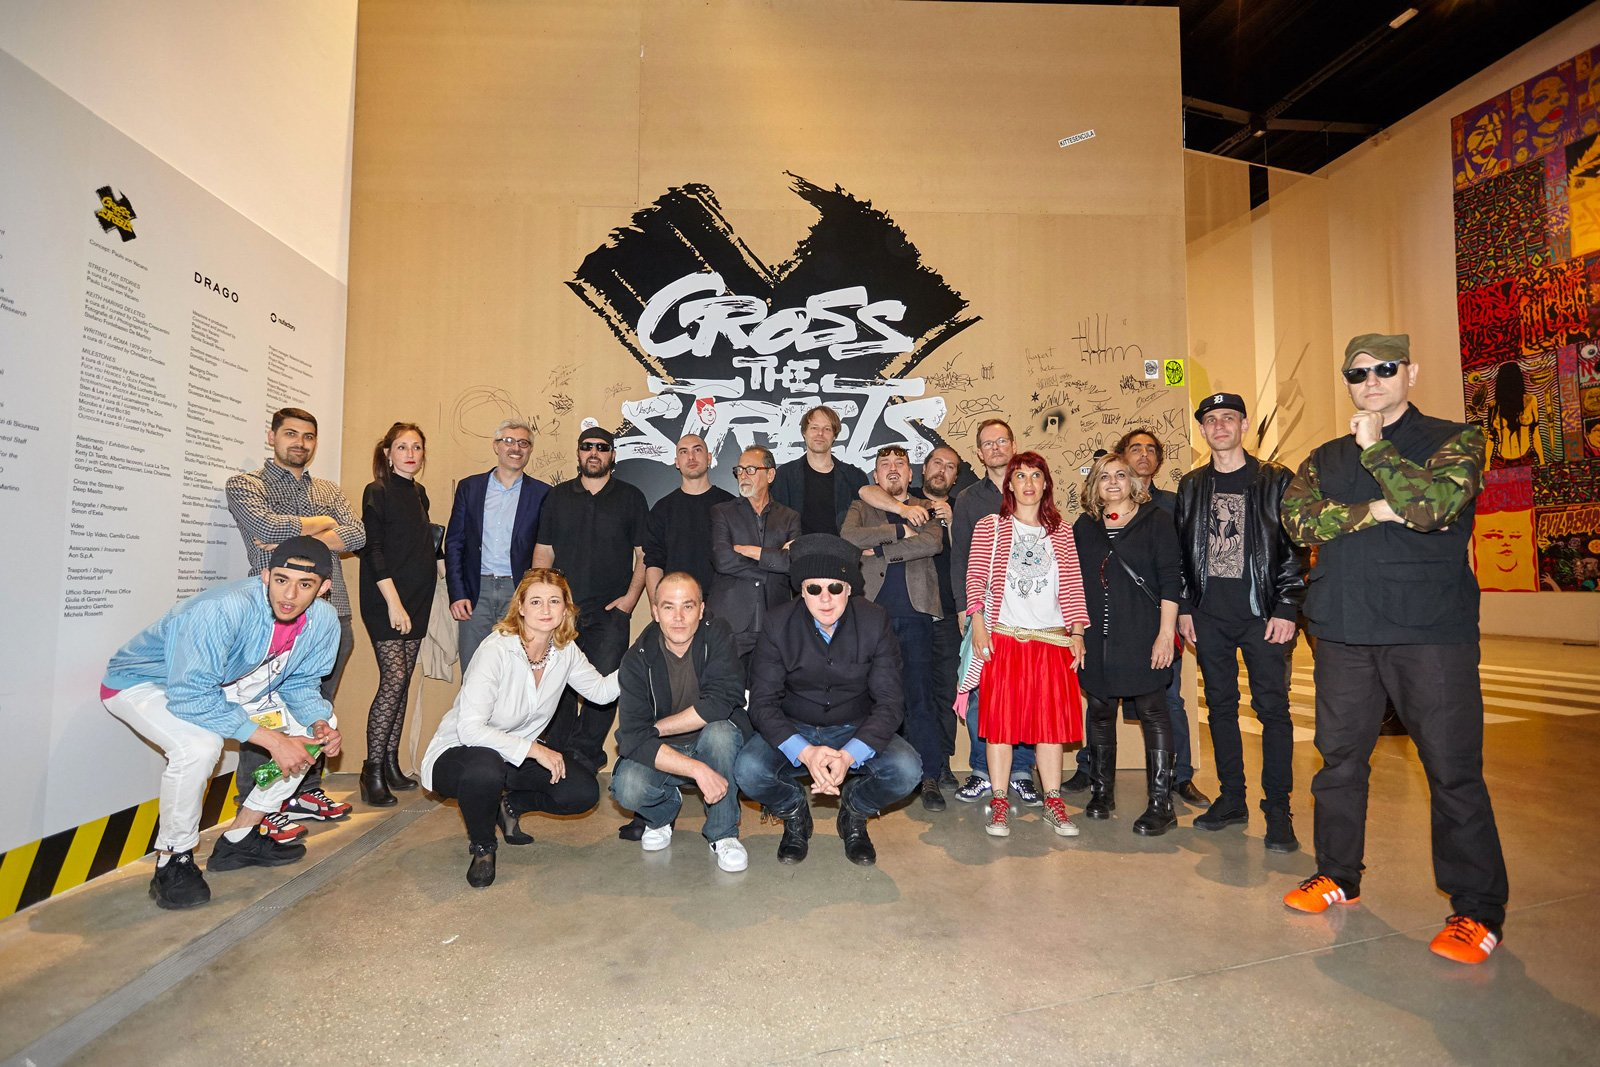 Curators, artists and staff that worked on the show. Cross the Streets Inauguration at MACRO